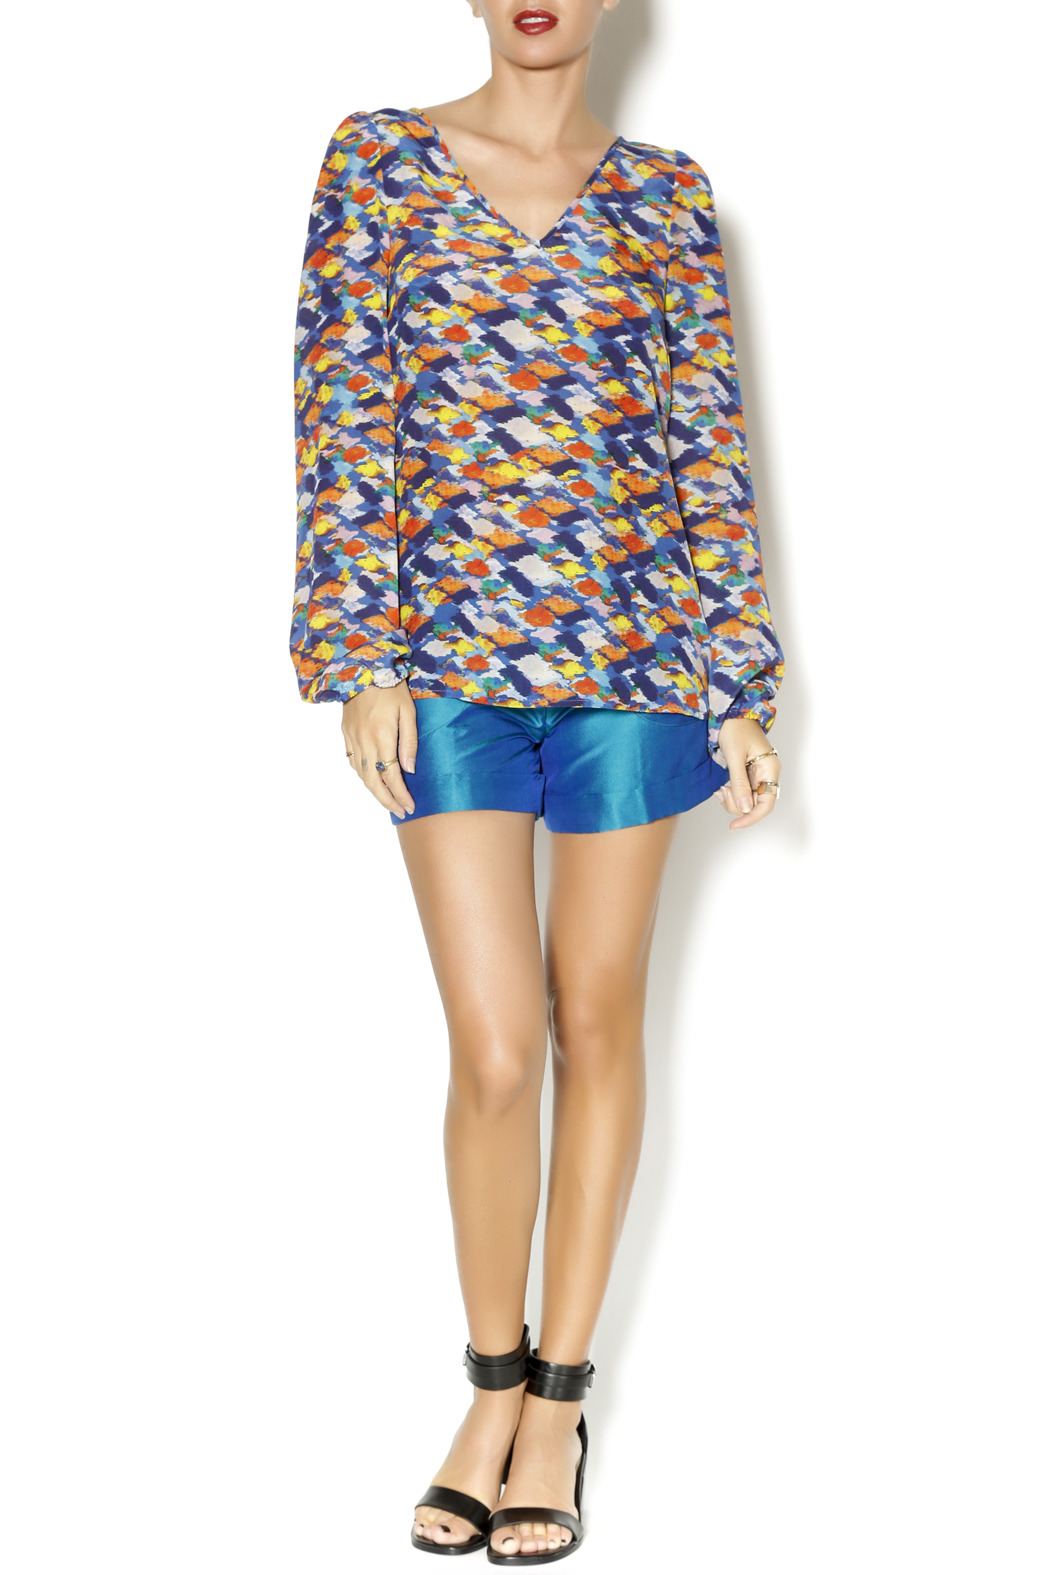 By Smith Monet Multicolor Blouse - Front Full Image